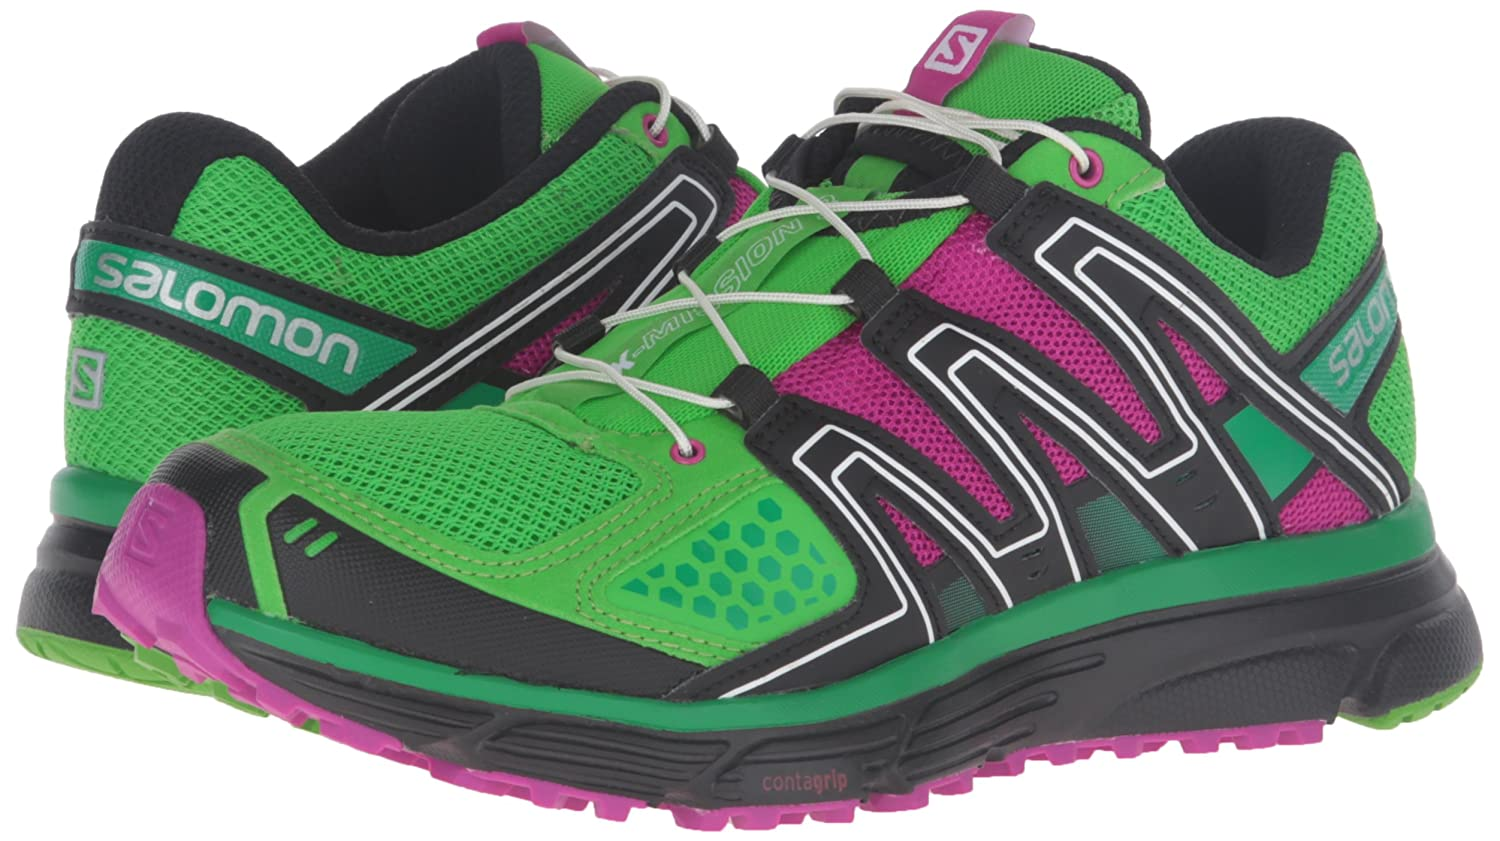 Salomon Damen X-Mission 3 W Traillaufschuhe 6 6 6 M US damen c4ce59